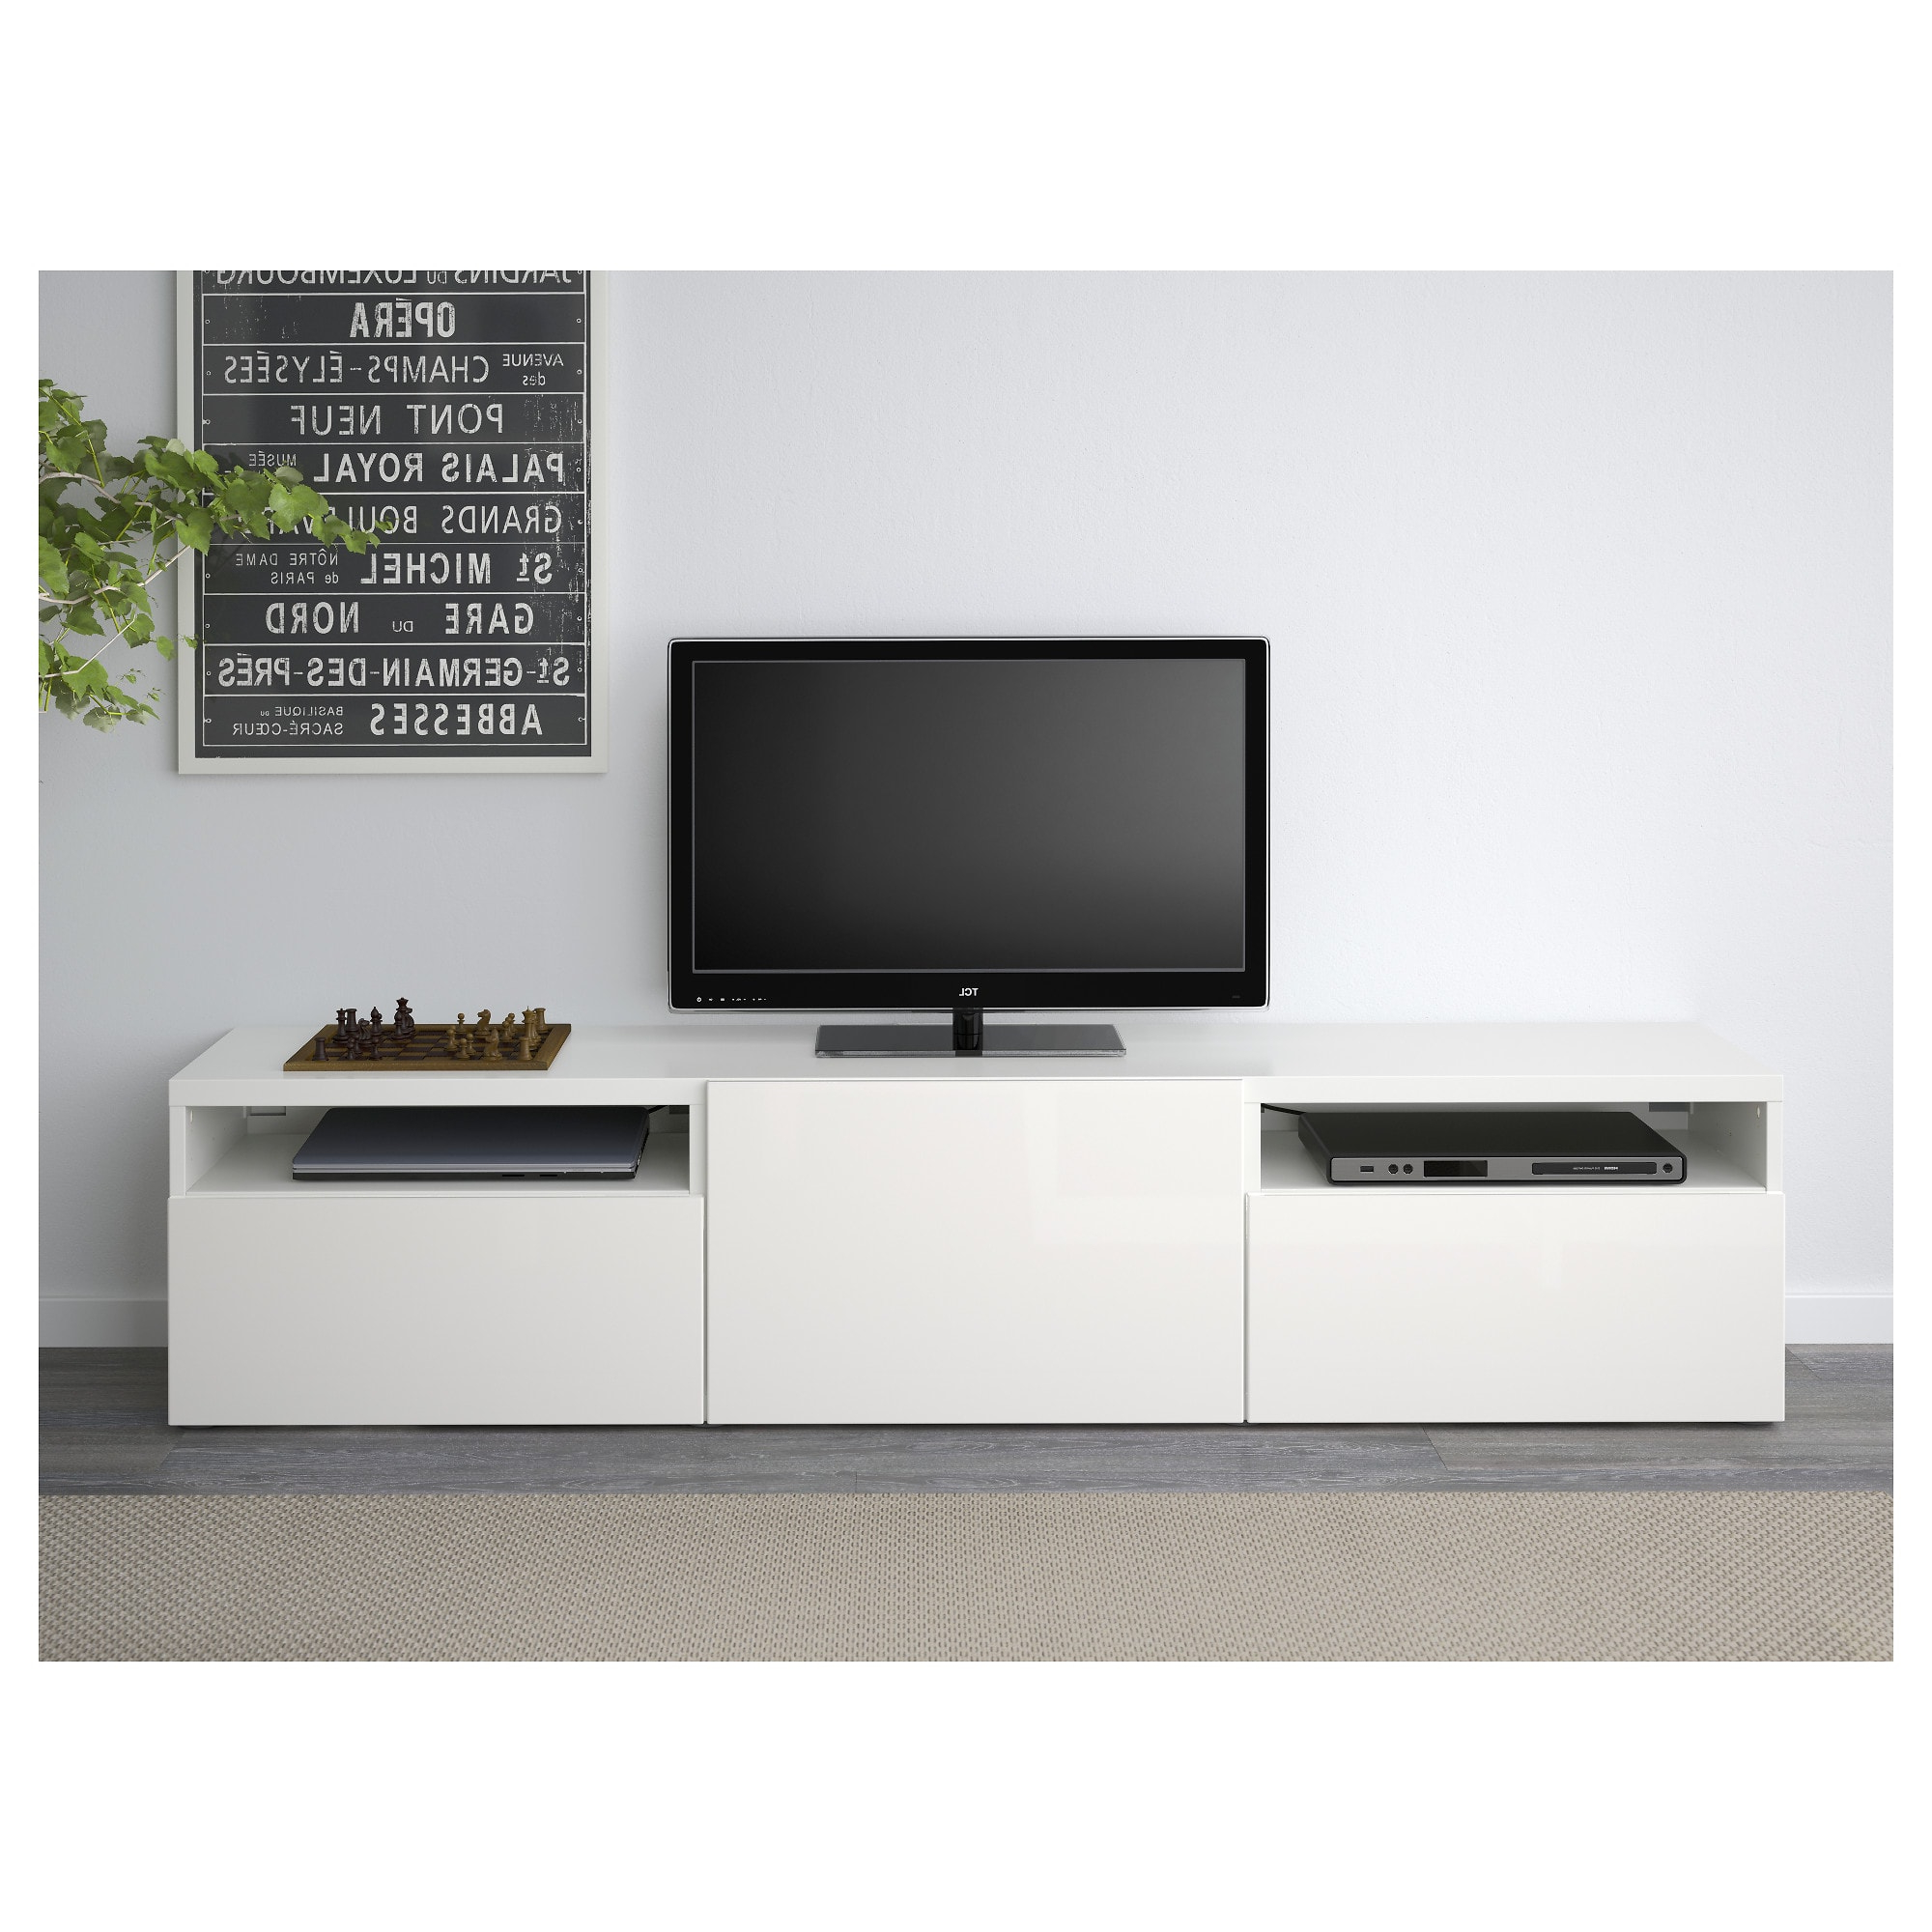 Mueble Tv Besta Mndw Bestà Mueble Tv Blanco Selsviken Alto Brillo Blanco 180 X 40 X 38 Cm